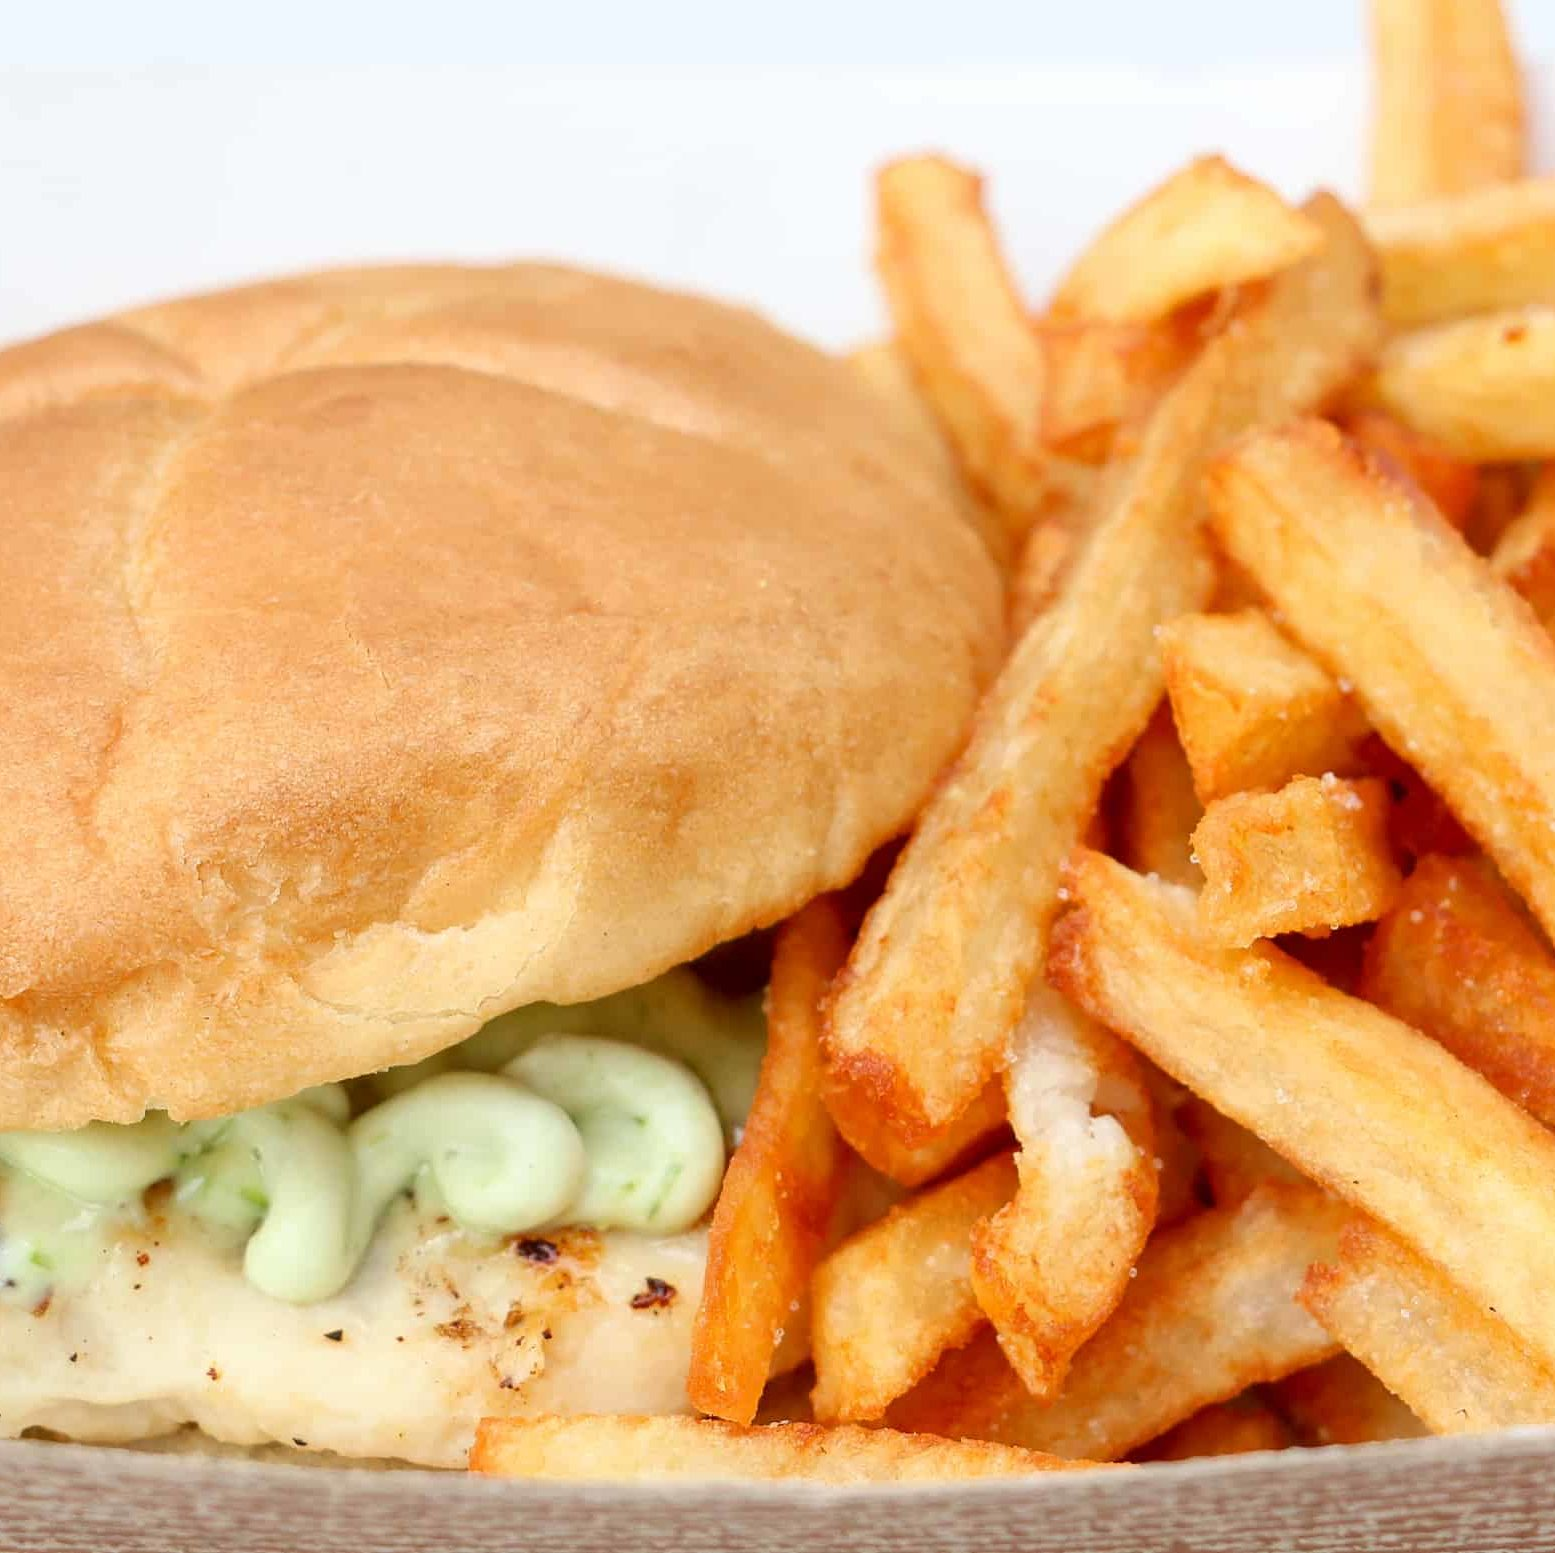 Chicken sandwich & frites